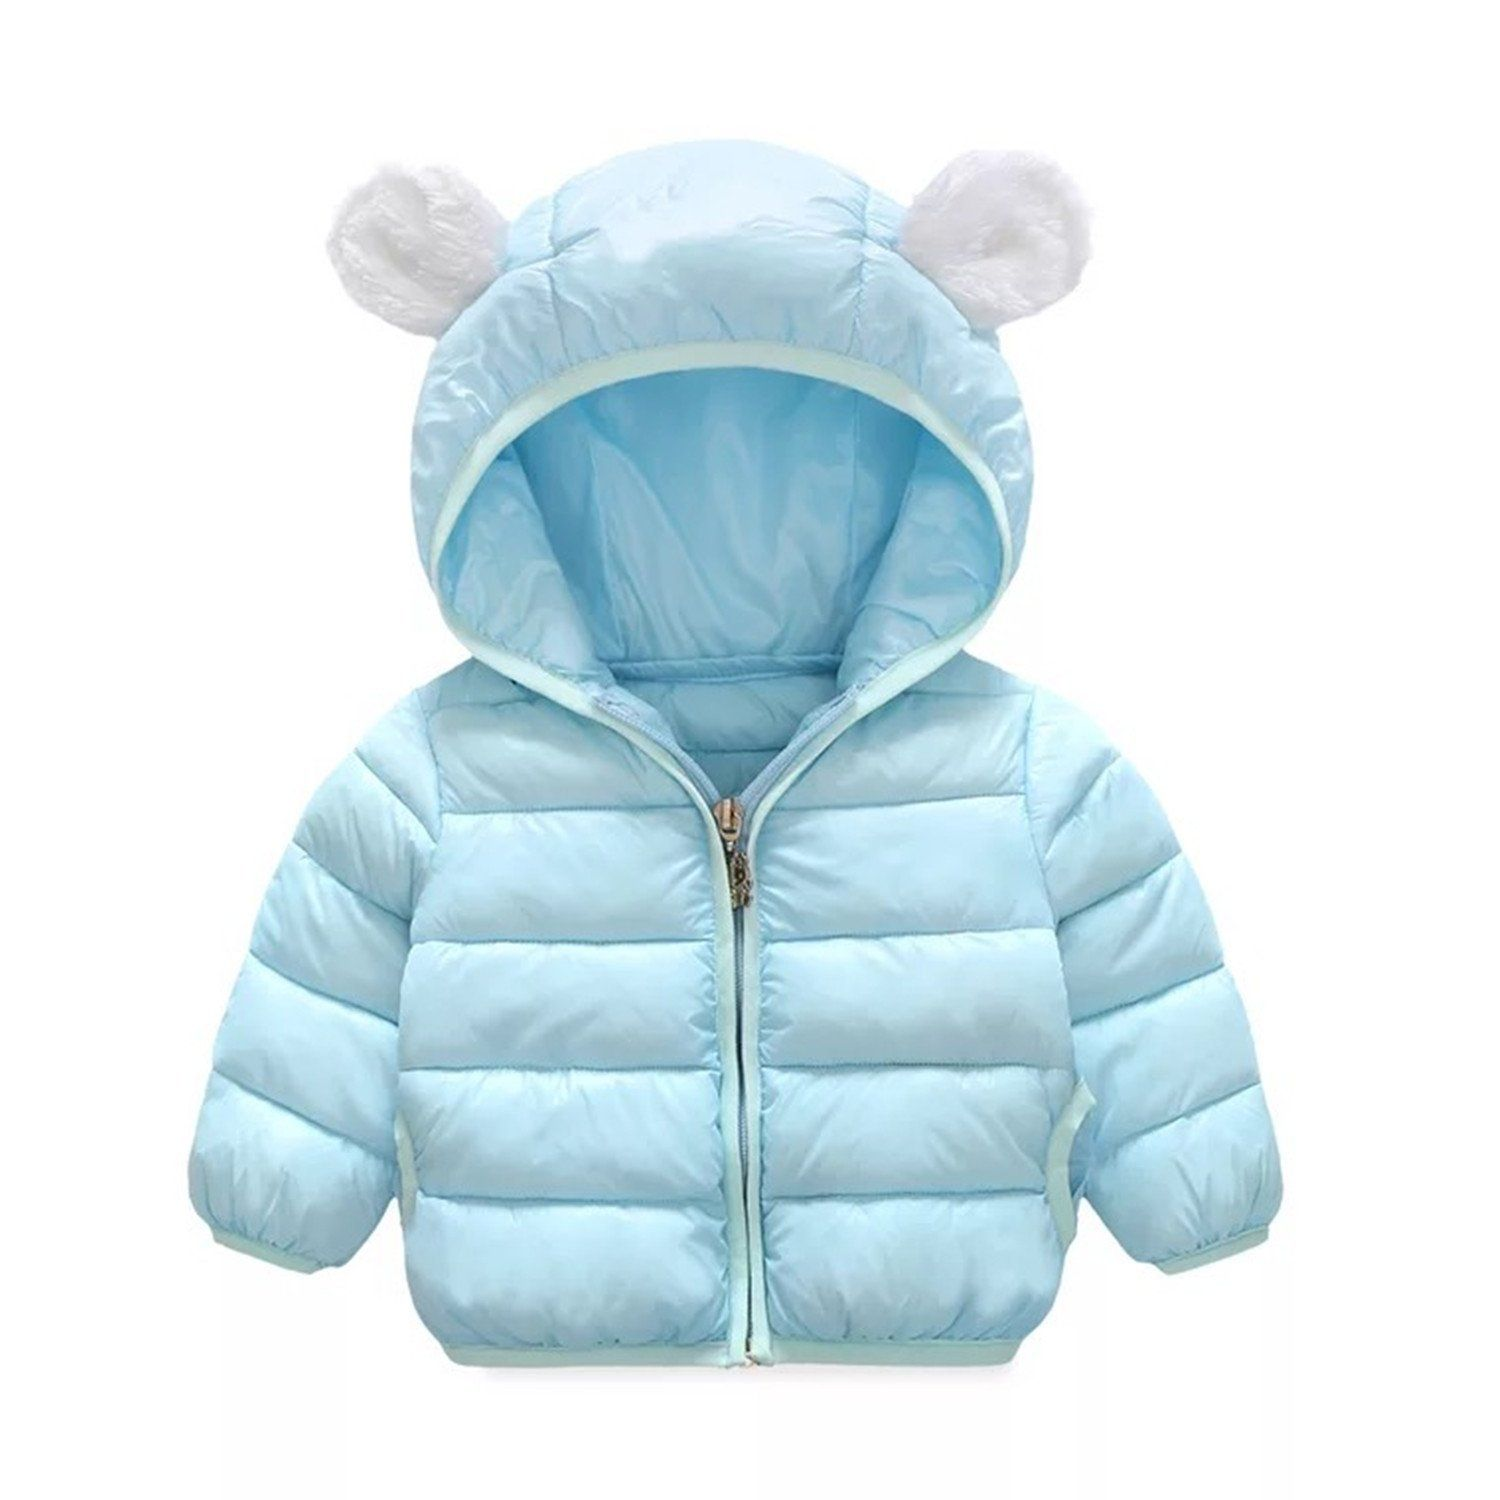 Kids Winter Cotton Jacket Coat Cartoon Puffer Outwear Baby Ultra Hood Snowsuit